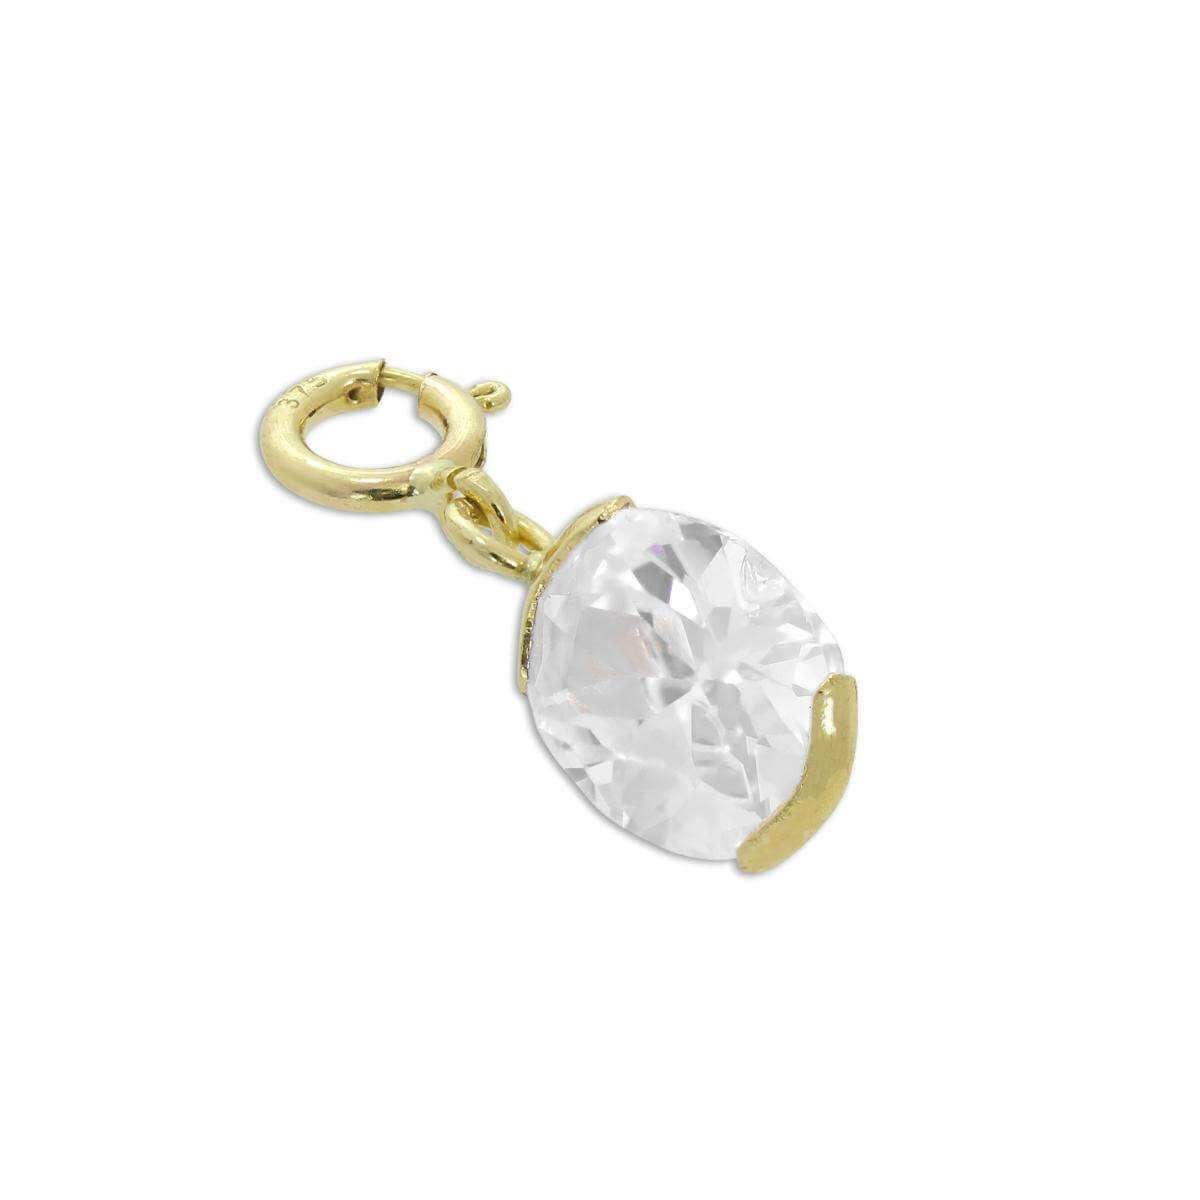 9ct Gold & Clear CZ Oval Clip on Charm